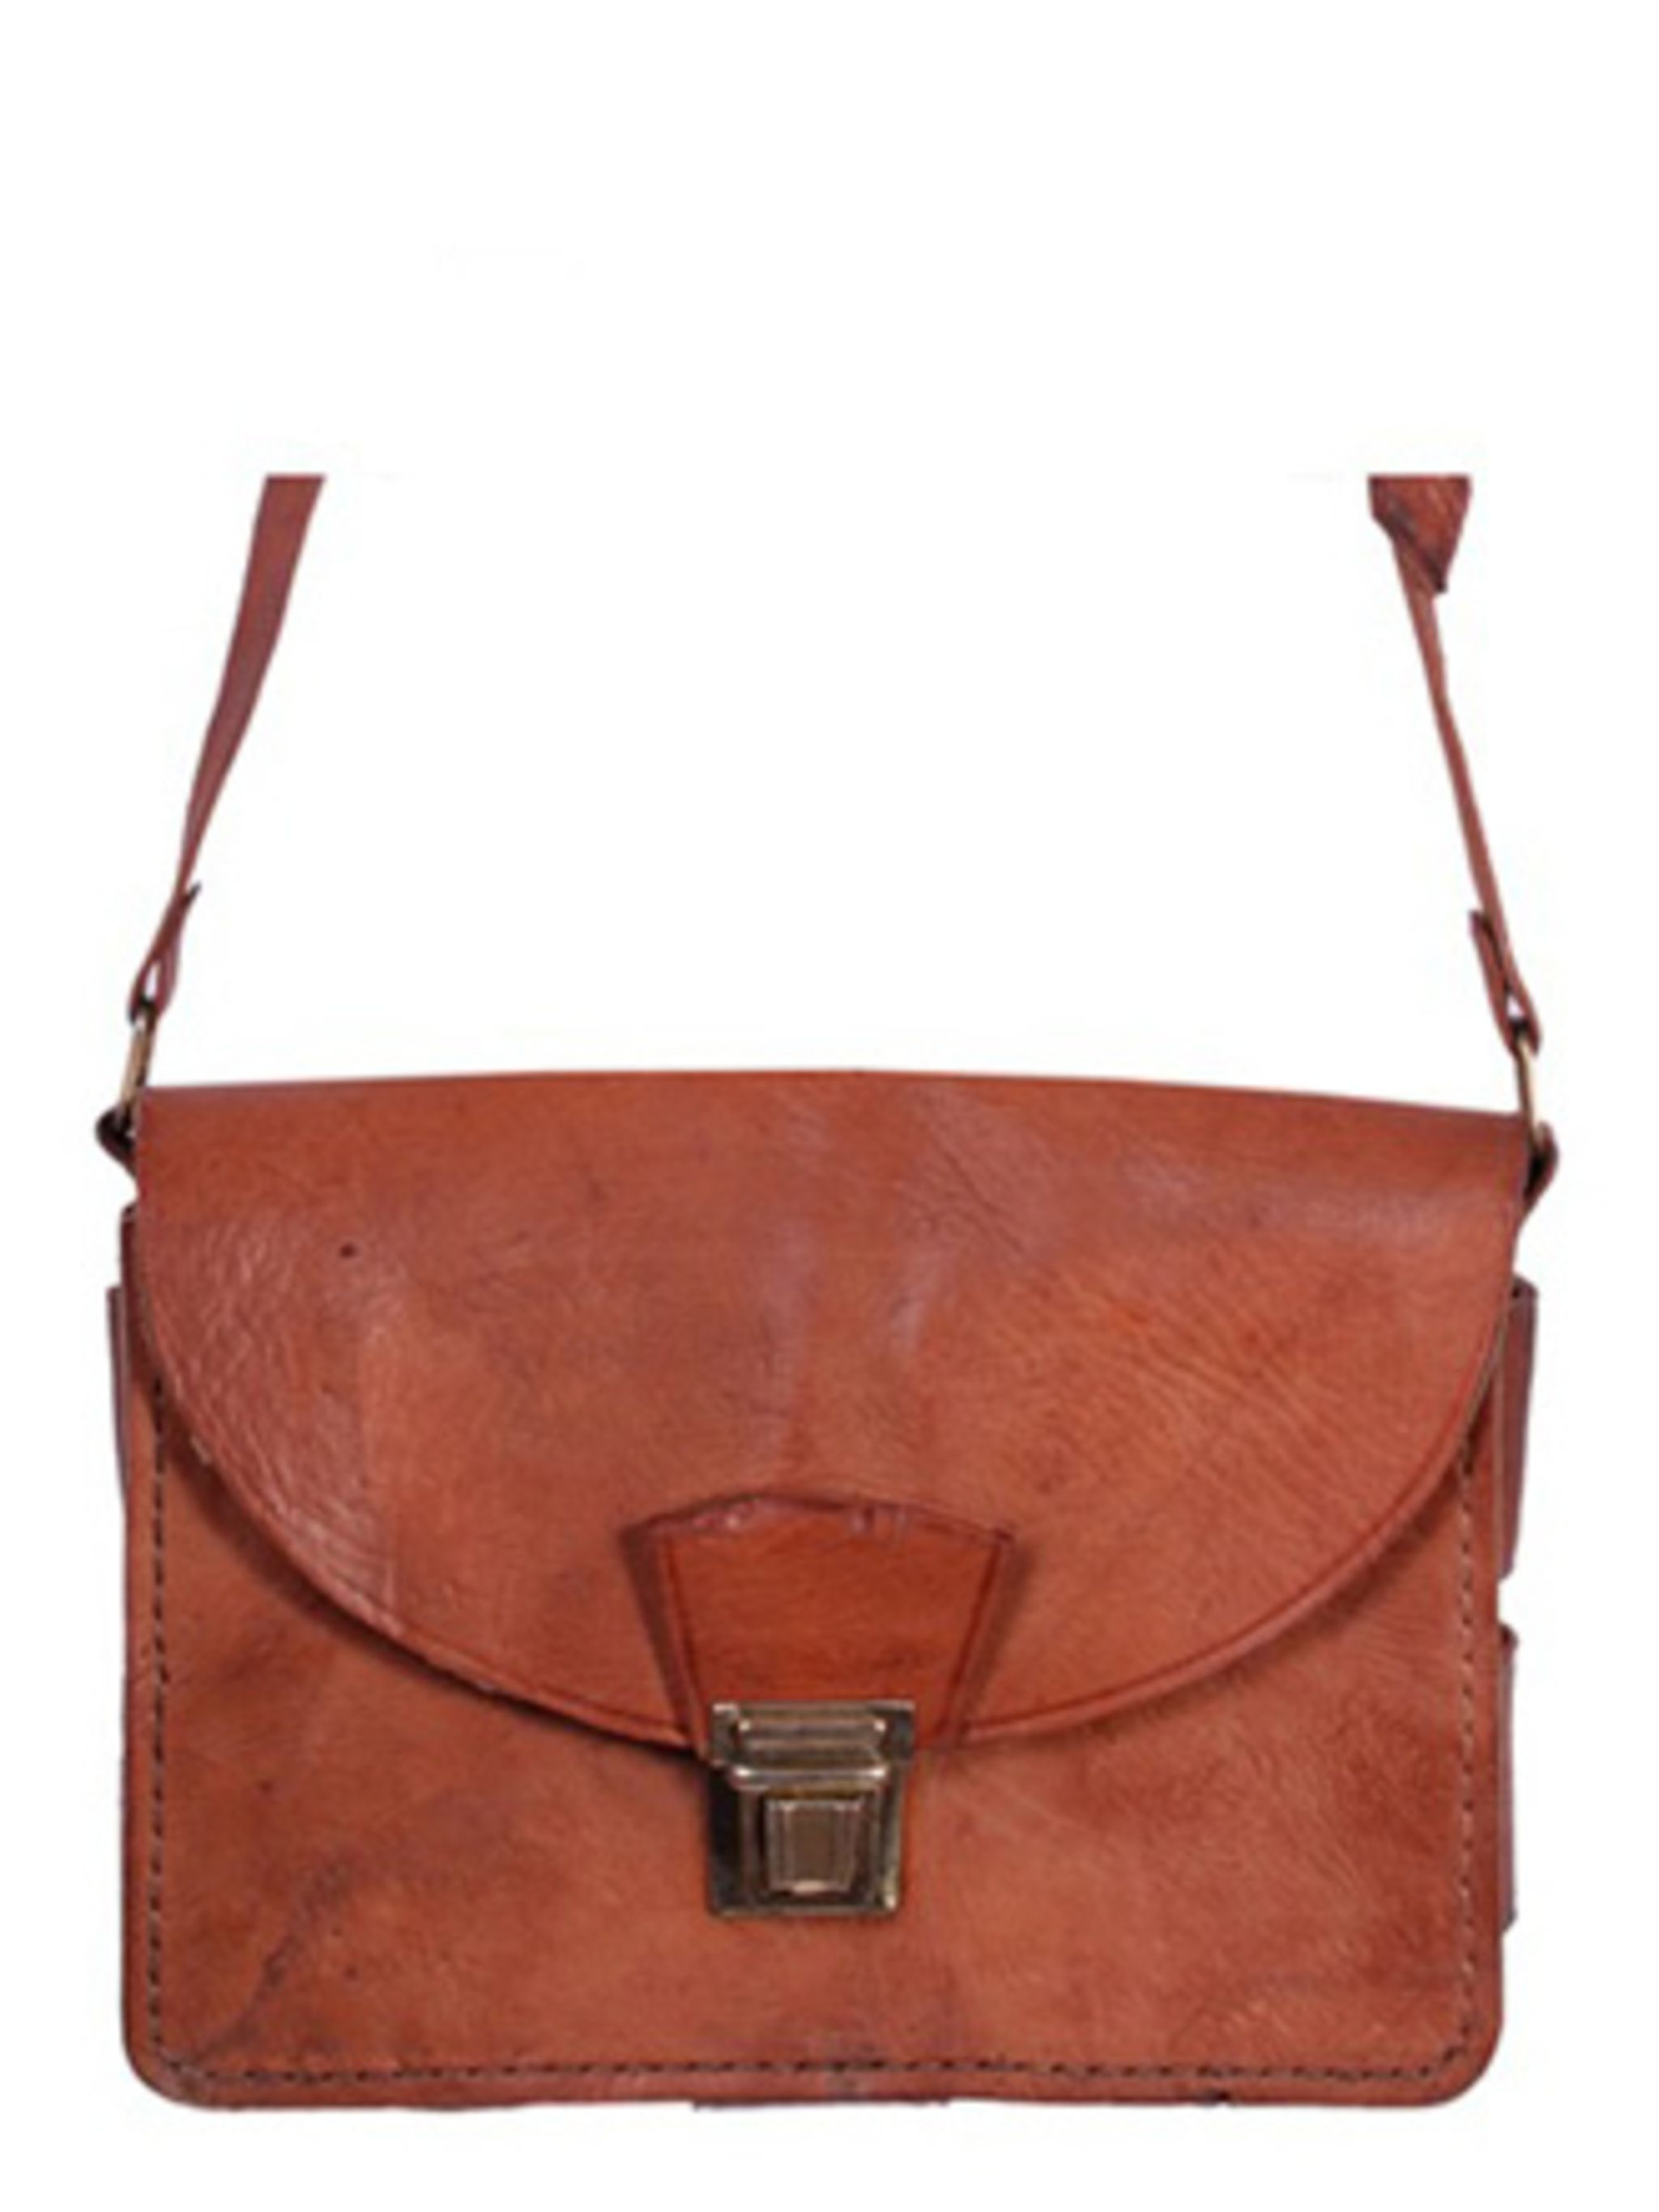 "<p>Satchels are the bag of the summer. We spotted this leather version on PretaPortobello.com for a jaw-dropping £24 price tag.</p><p>Satchel, £24 by LILA at <a href=""http://www.pretaportobello.com/shop/shoes-and-accessories/bags/lila-large-leather-satche"